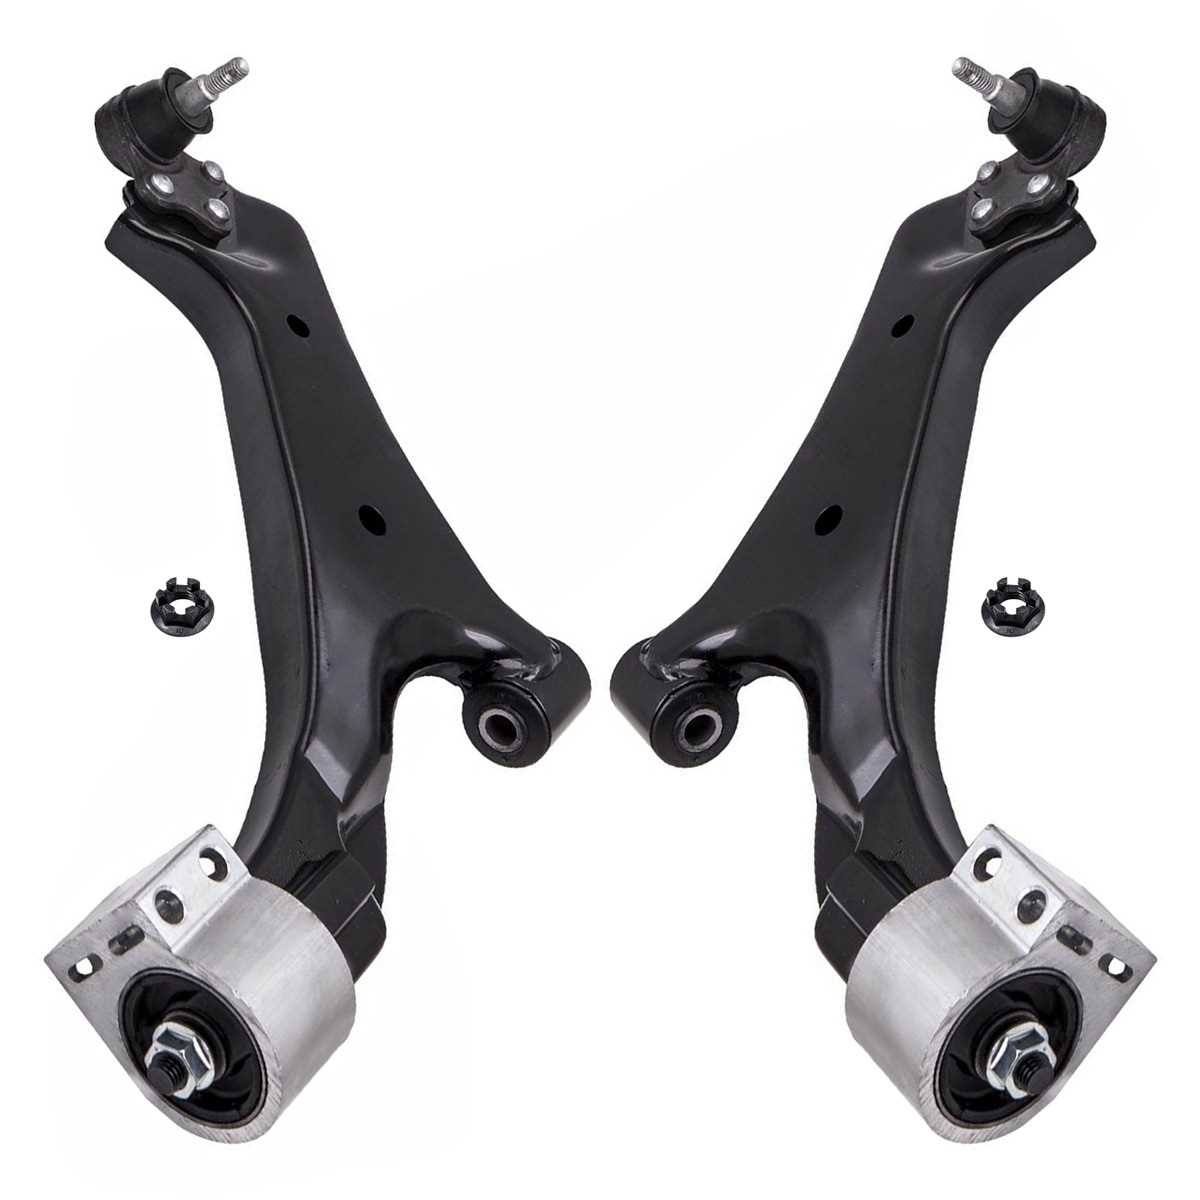 Auto Shack CAK171-171 Pair of Upper Control Arms